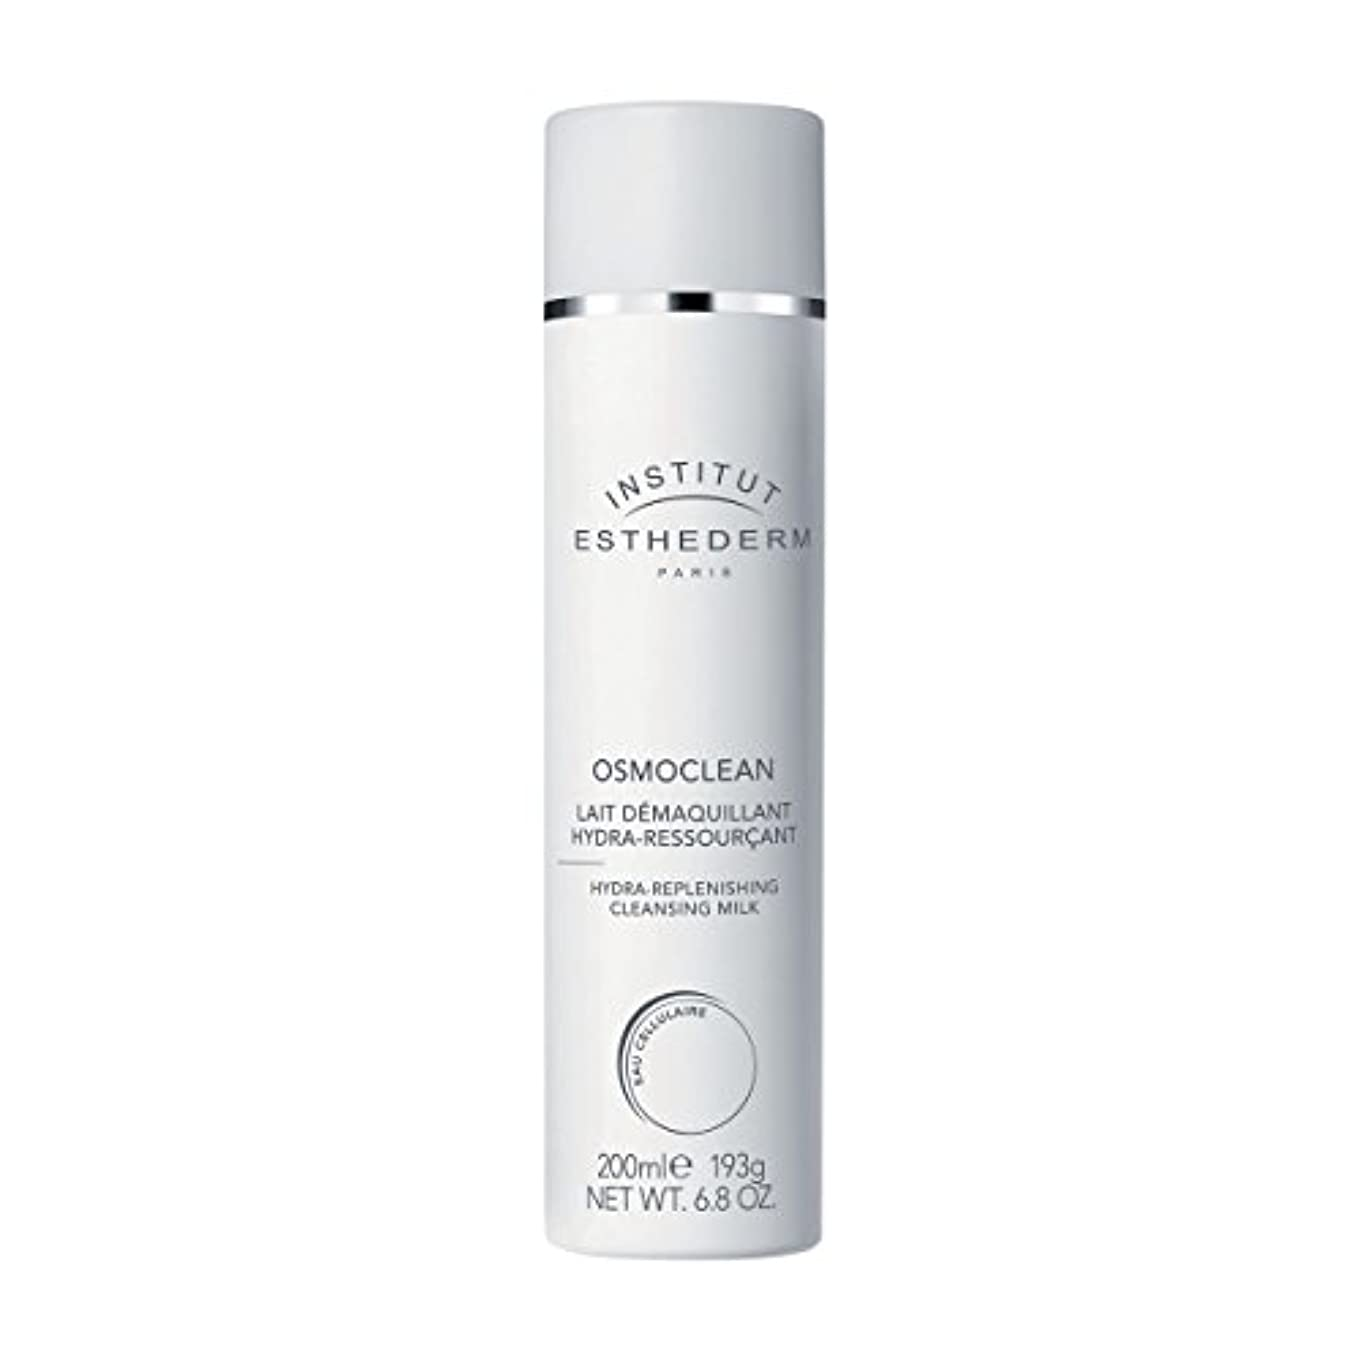 ライトニング到着同級生Institut Esthederm Osmoclean Hydra-replenishing Cleansing Milk 200ml [並行輸入品]